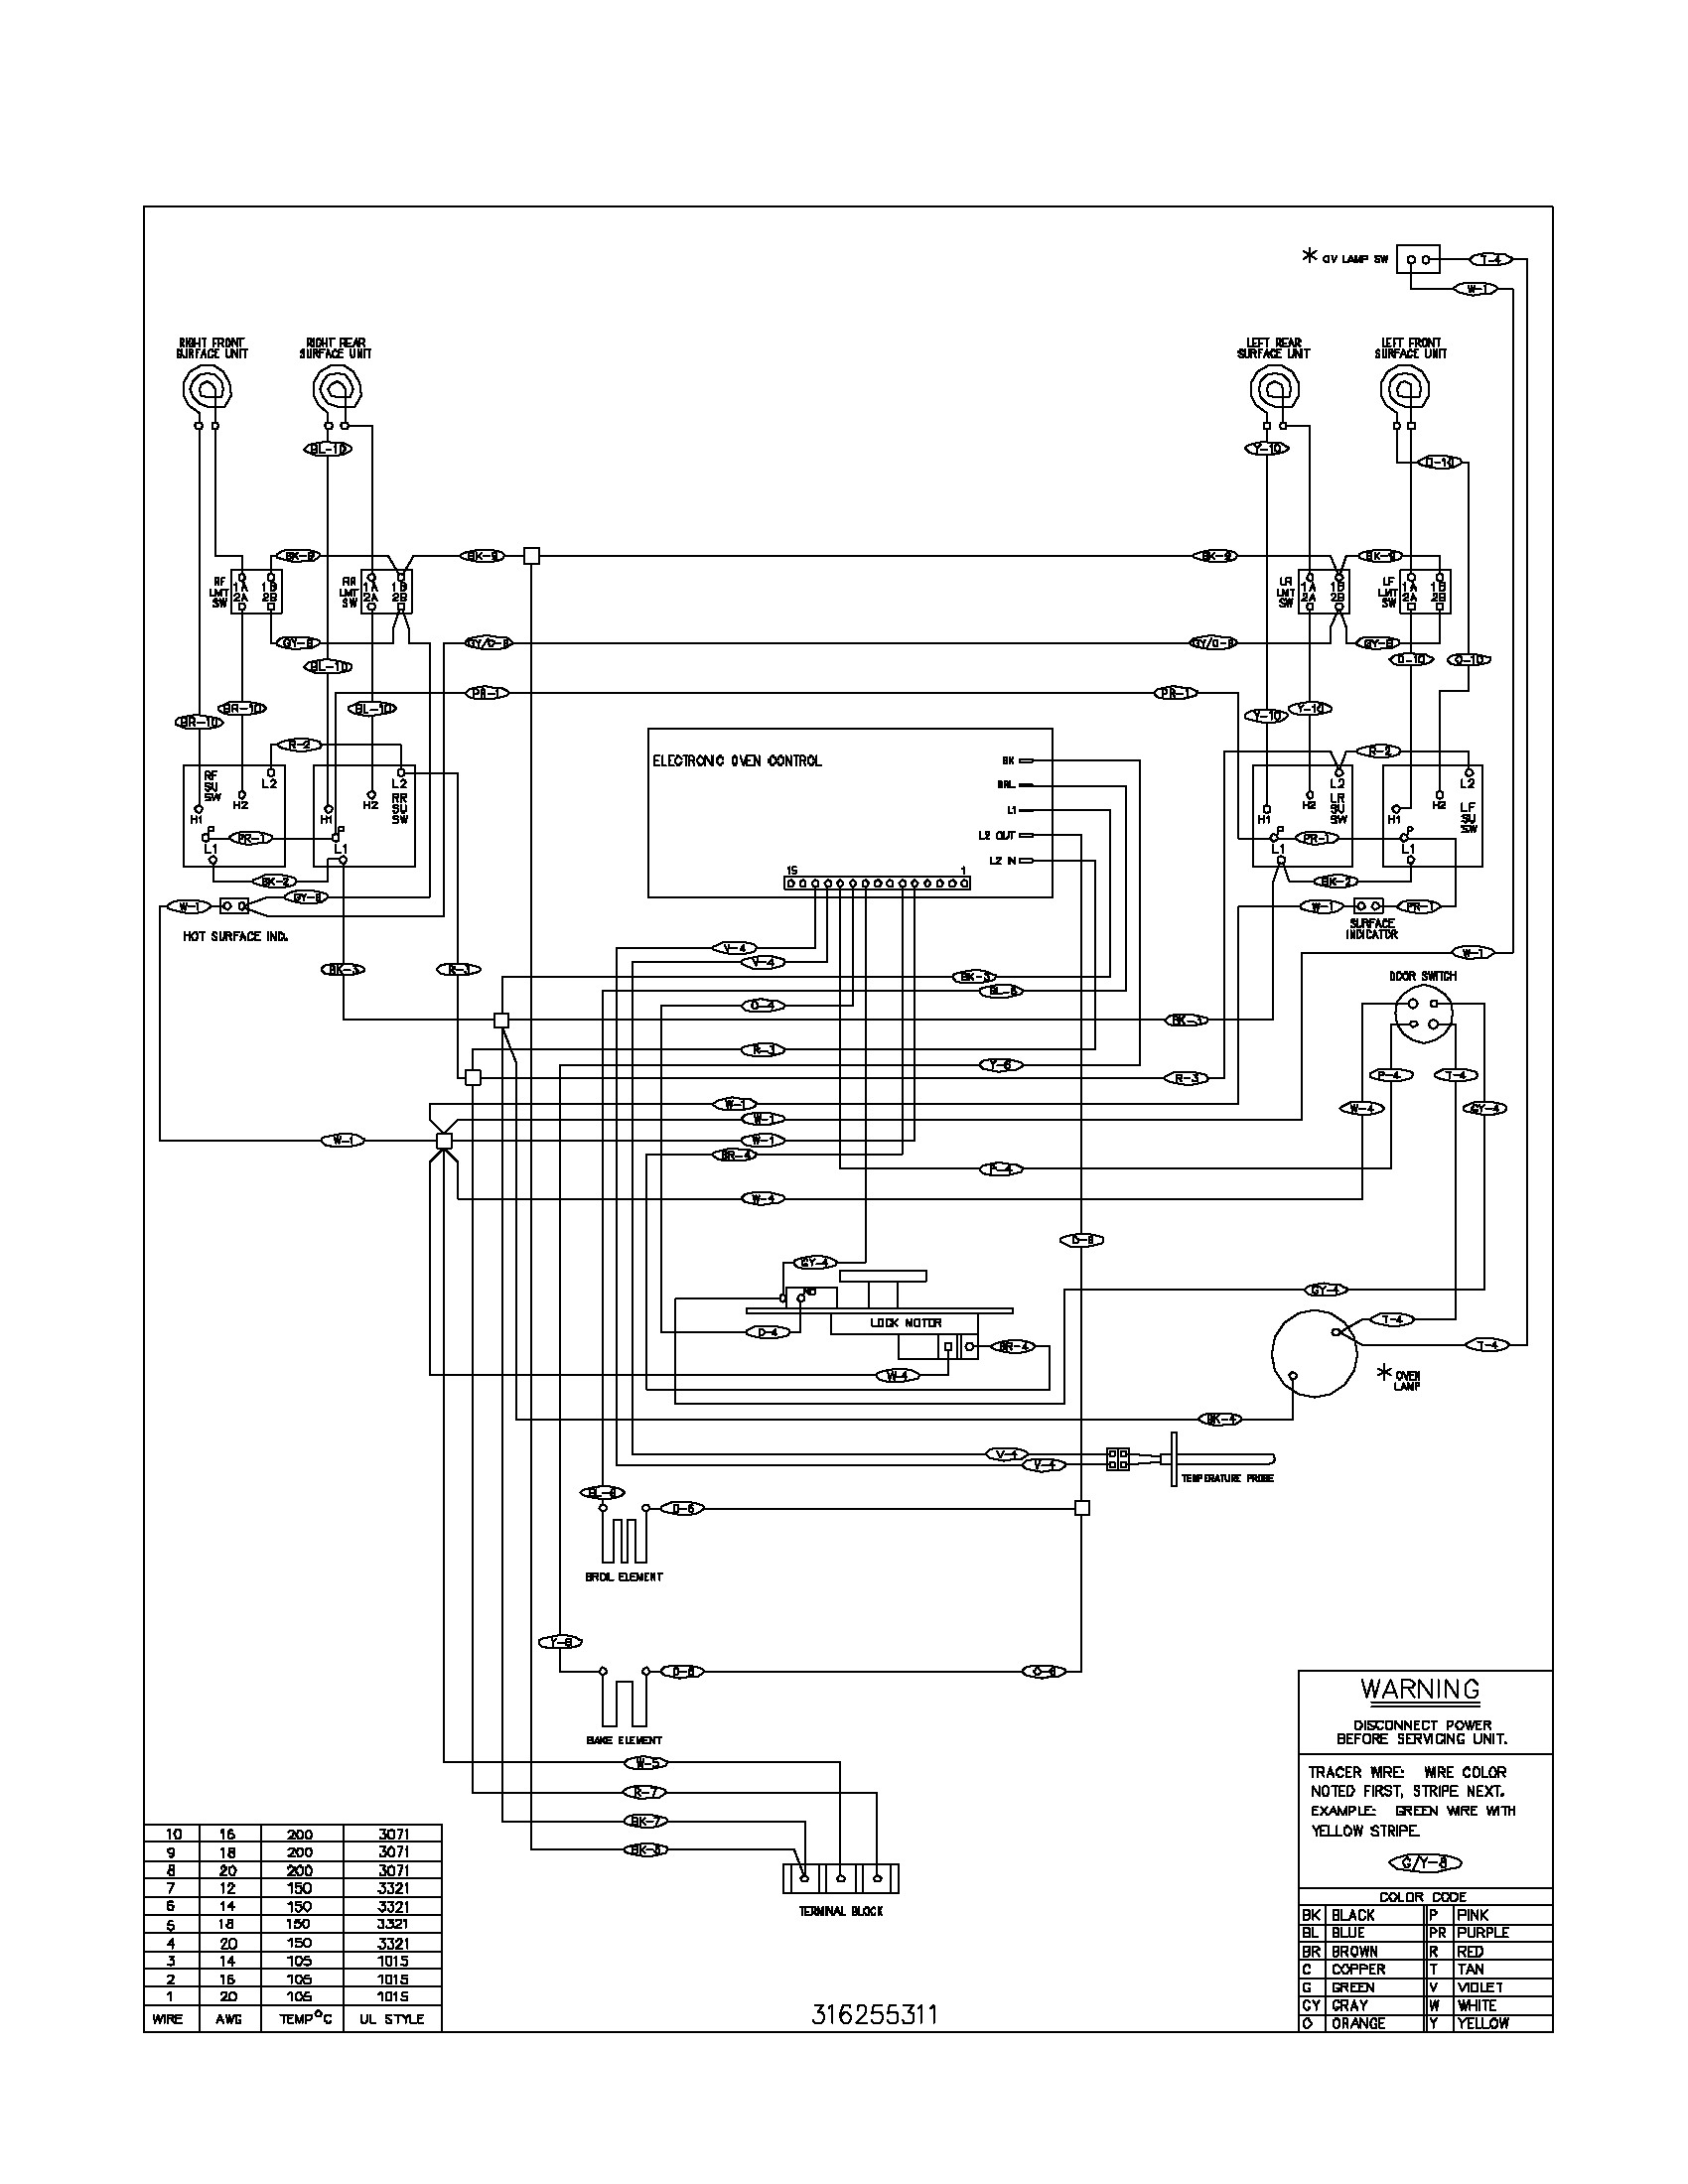 wiring a wall oven